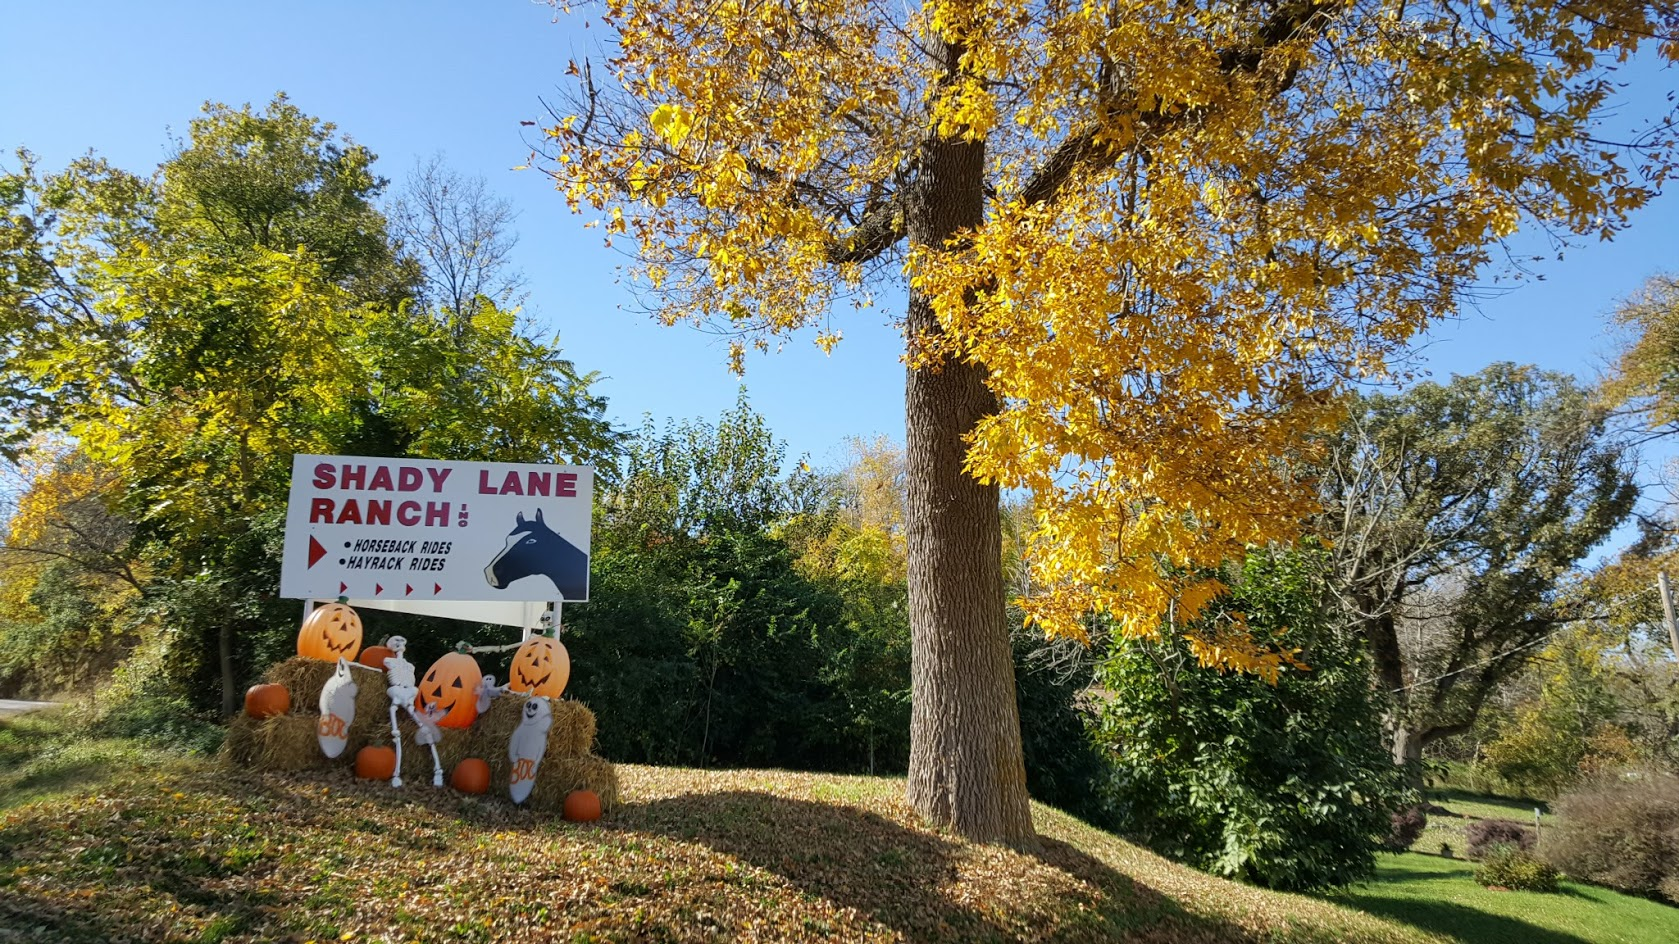 Shady Lane Ranch Council Bluffs